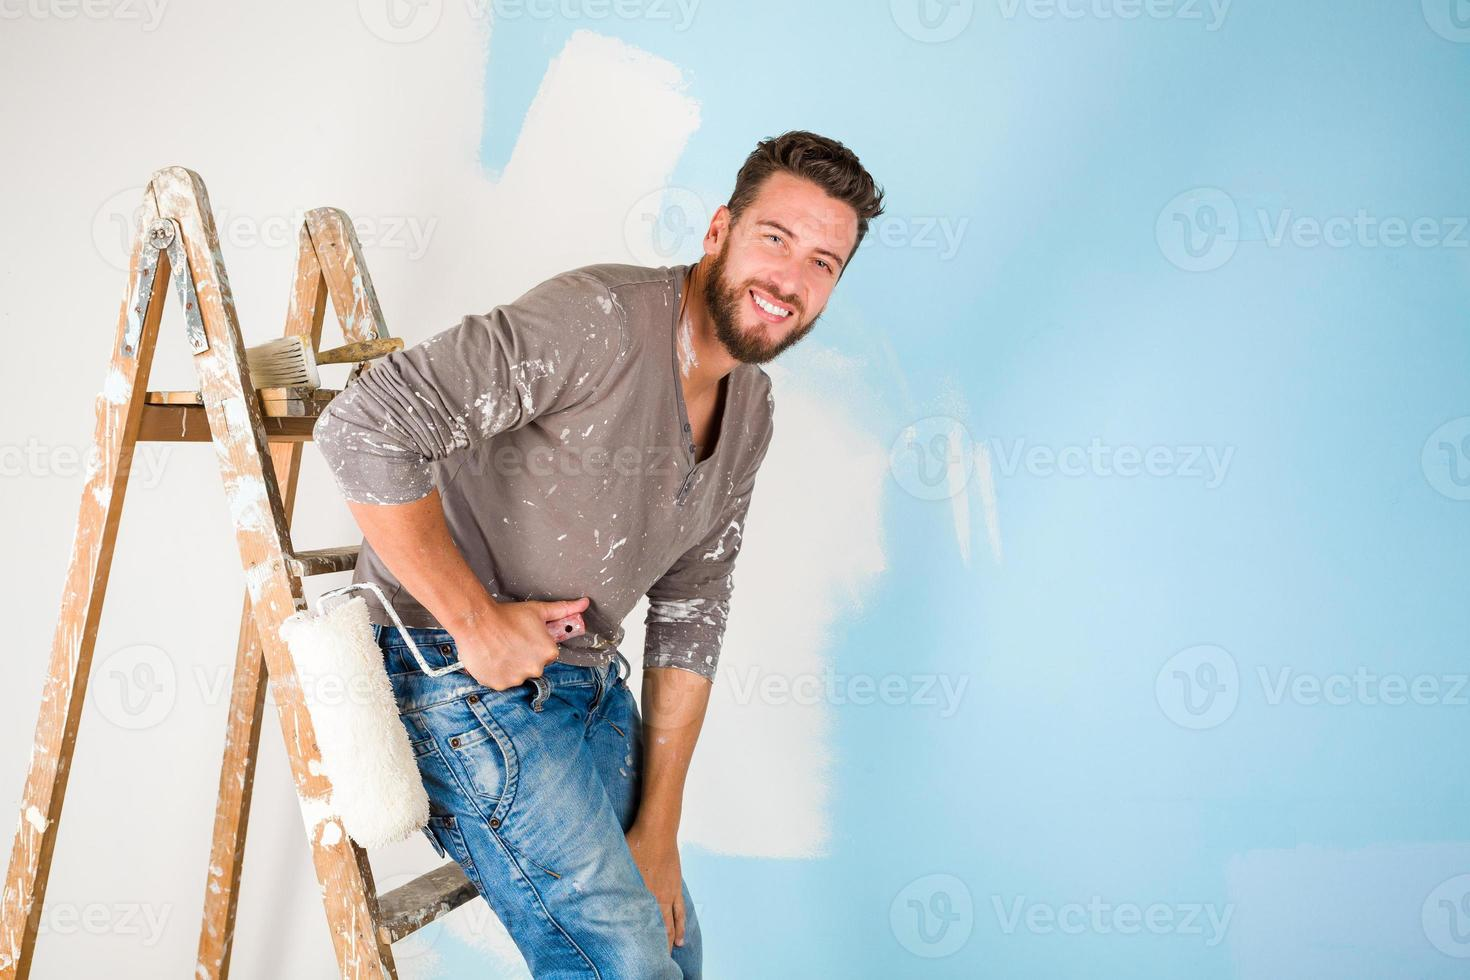 painter in paint splattered shirt painting a wall photo